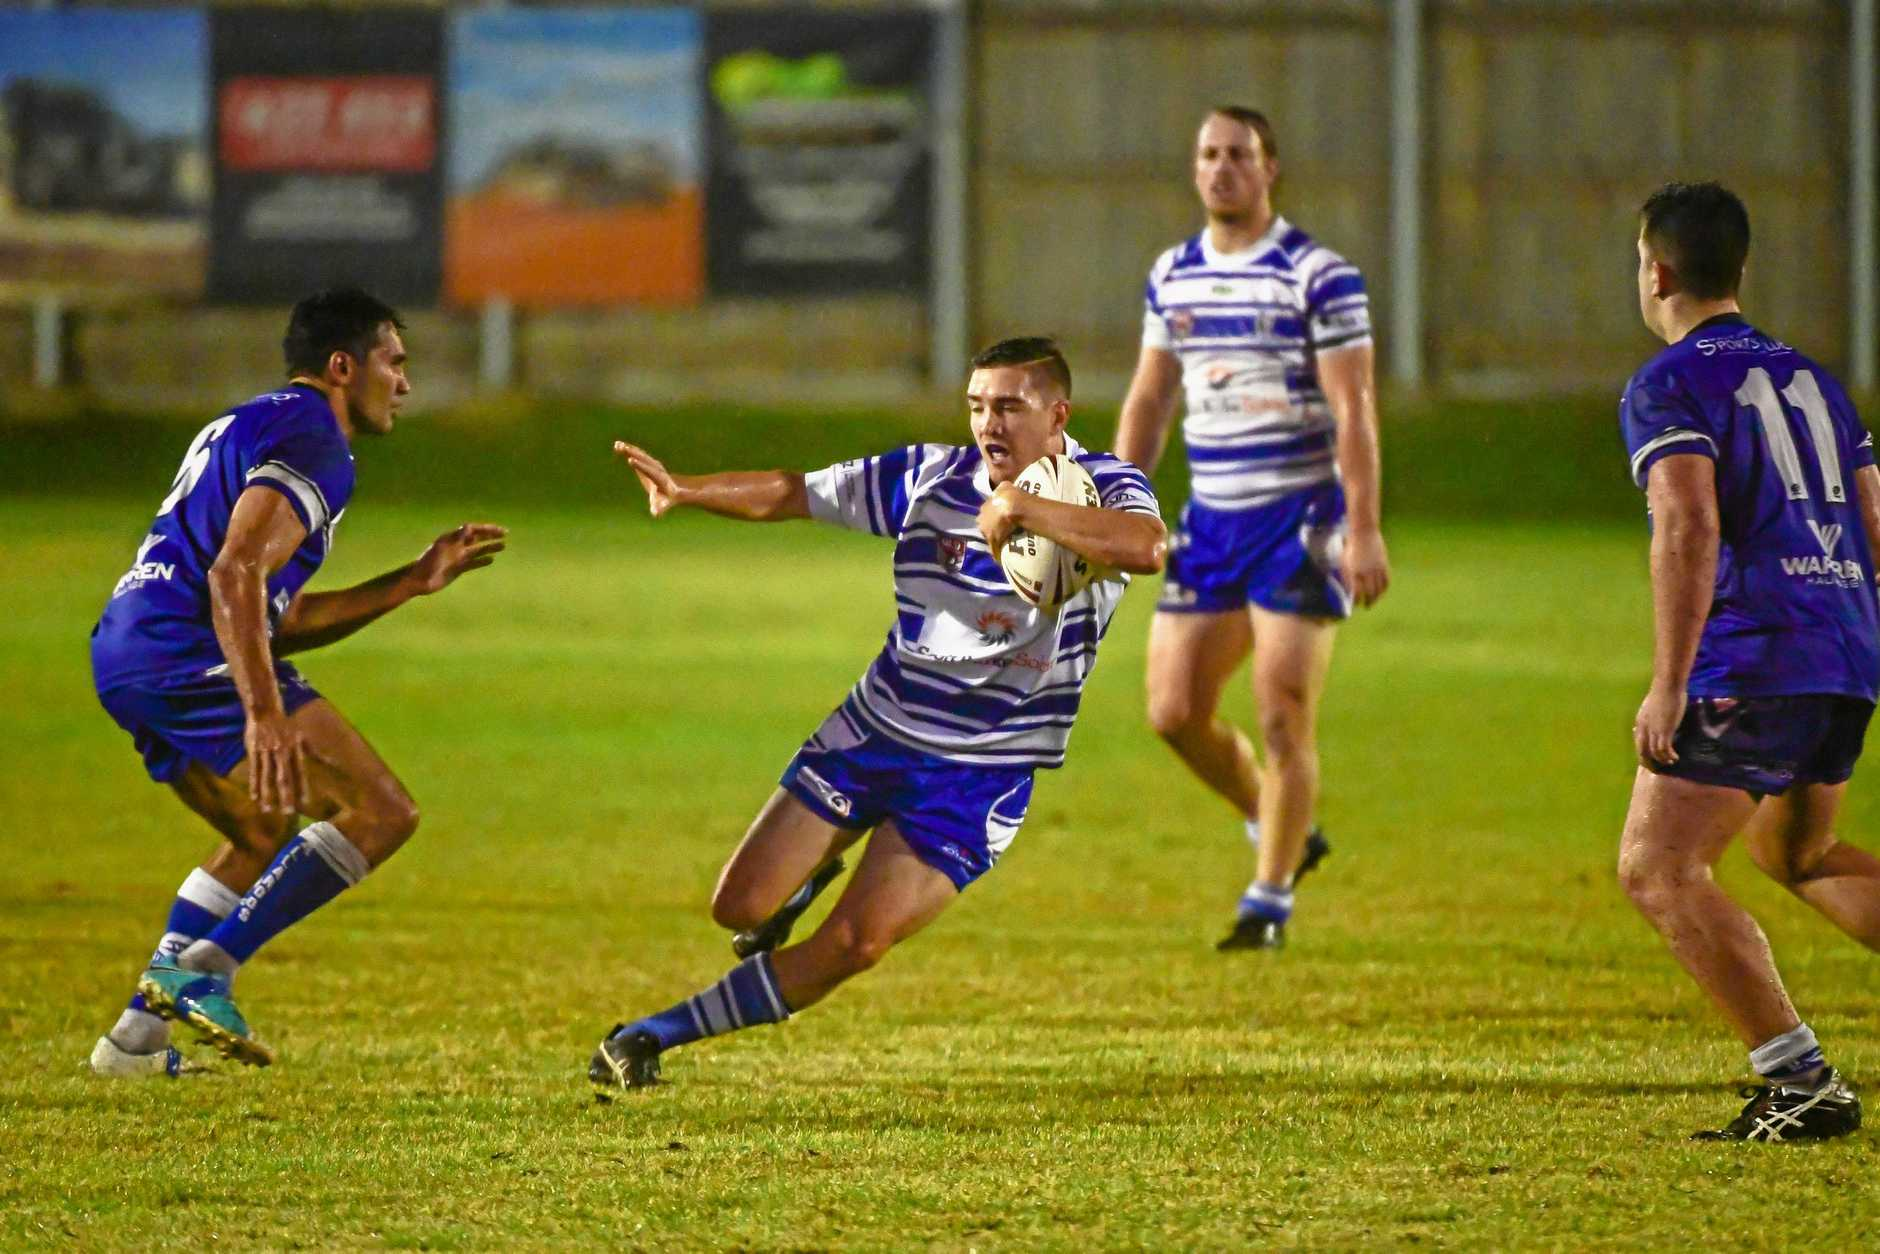 TFINDING THE SPACE: Past Brothers player Taylar Barritt weaves his way through the Wallaroos on Saturday night in Bundaberg.